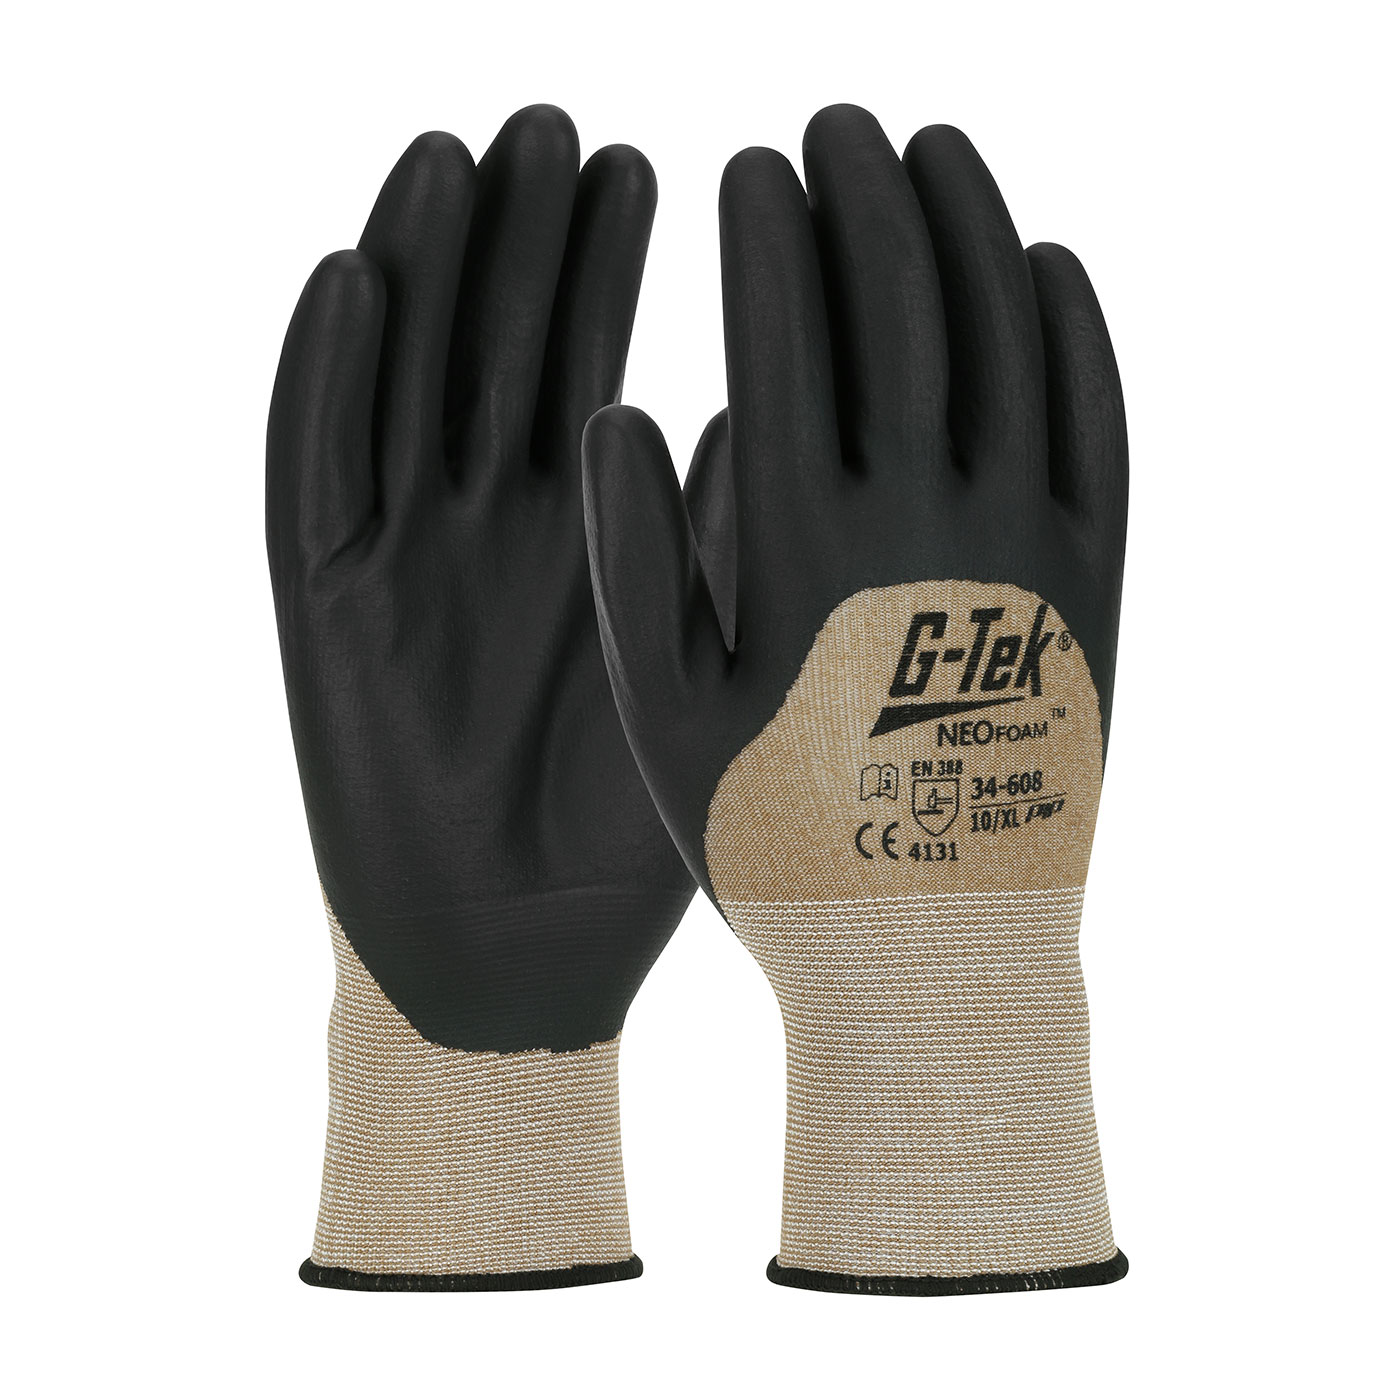 #34-608 PIP® G-Tek® Seamless Nylon Knit Gloves with Neofoam Coated Palms, Fingers and Knuckles